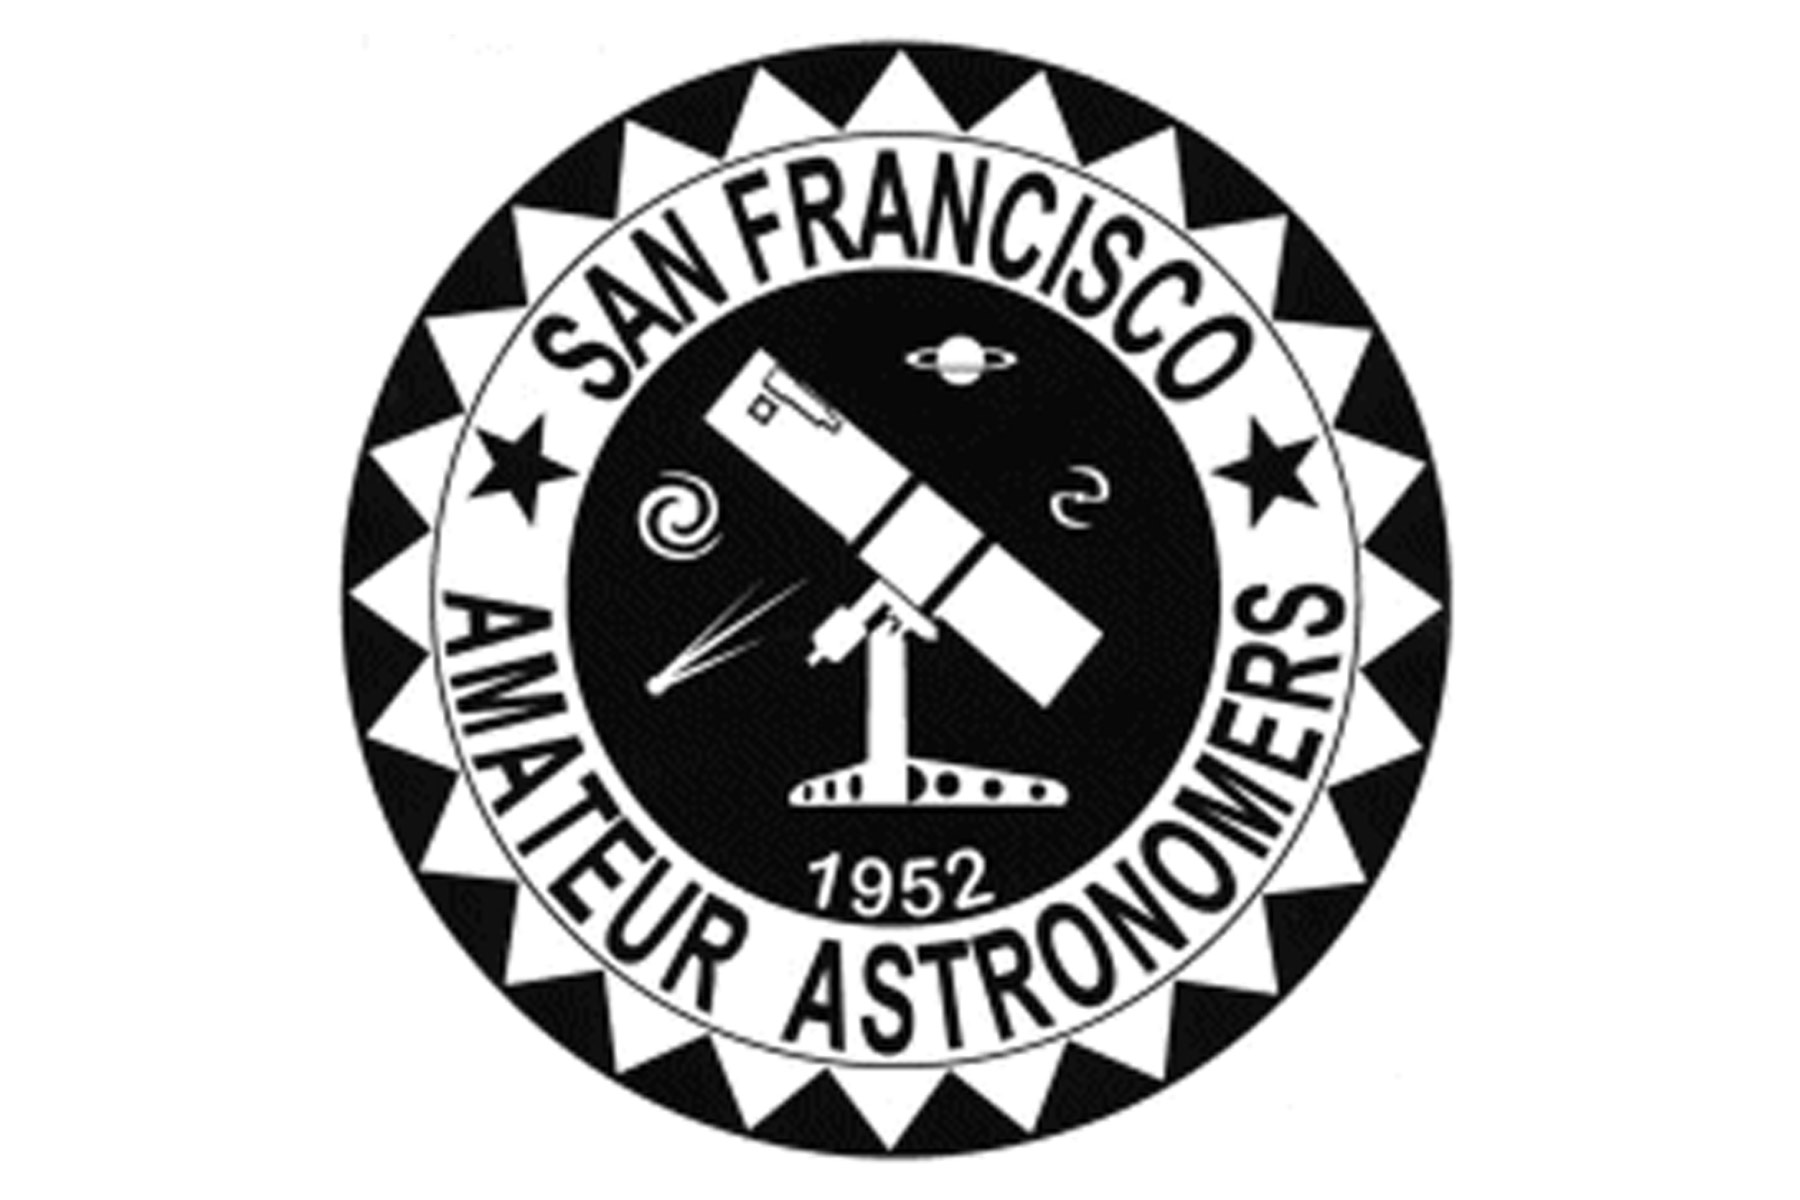 San Francisco Amateur Astronomers logo